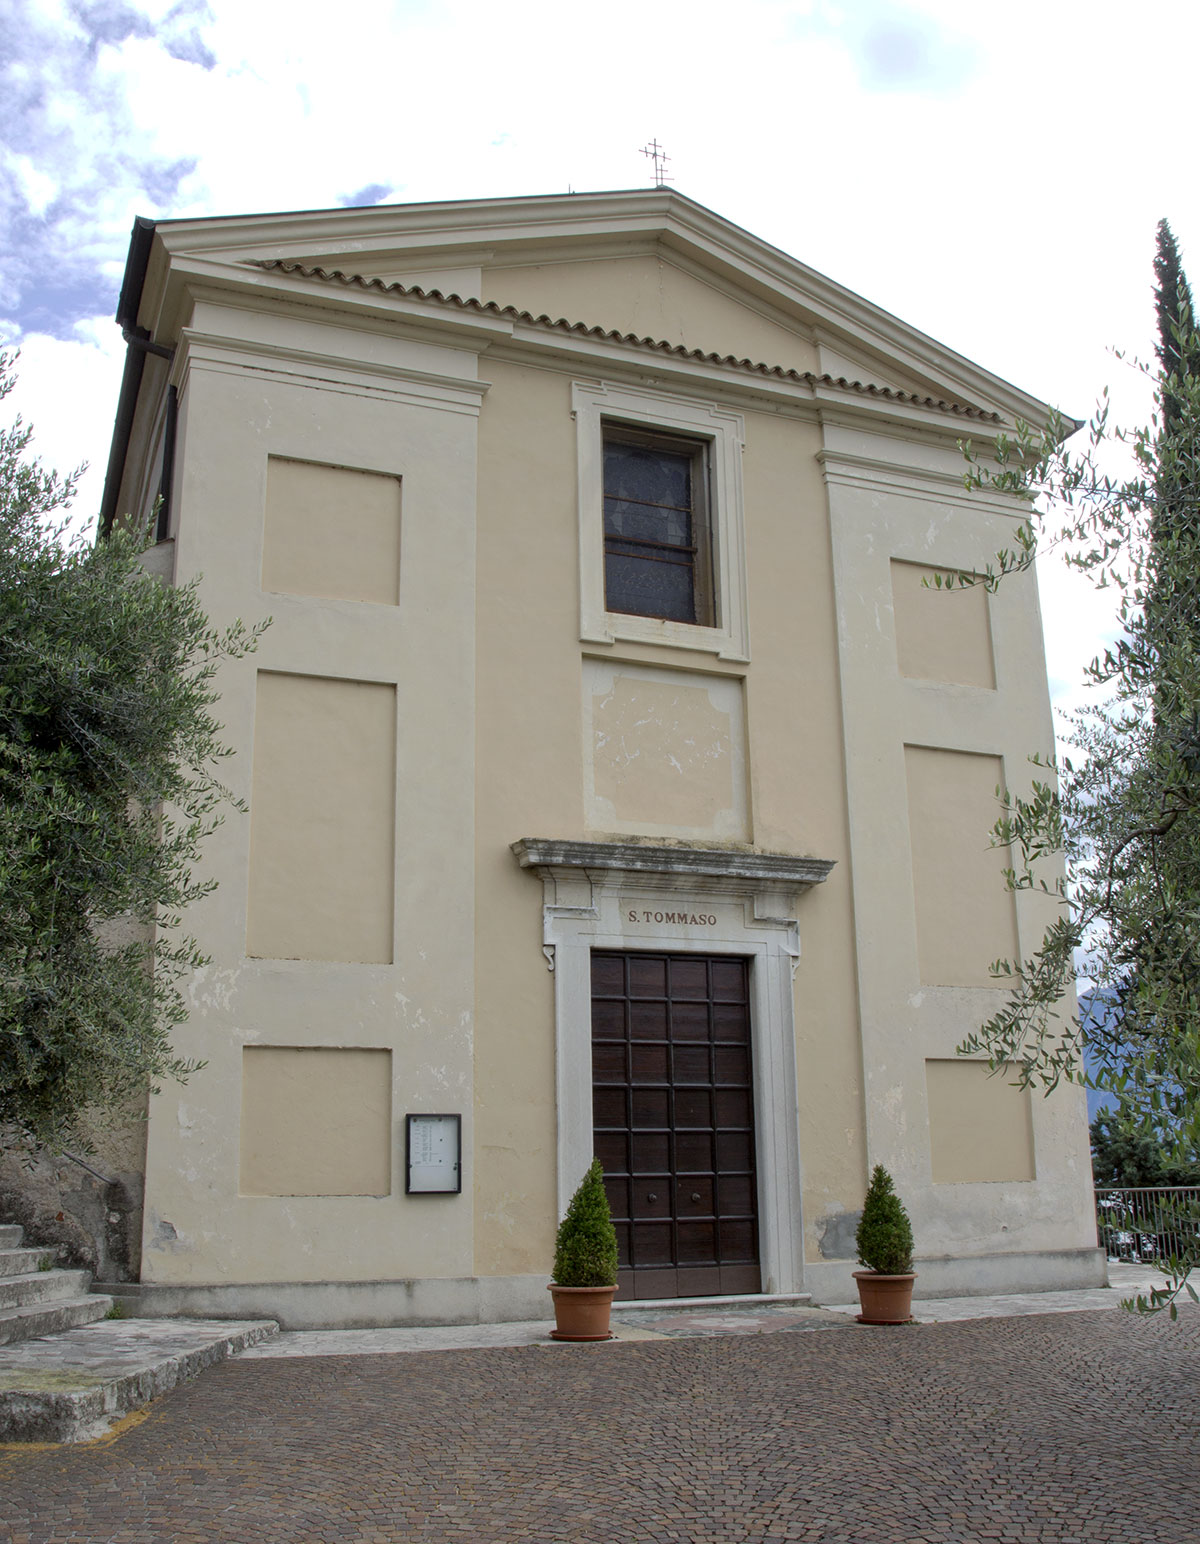 The Church of Saint Thomas in Villa di Gargnano